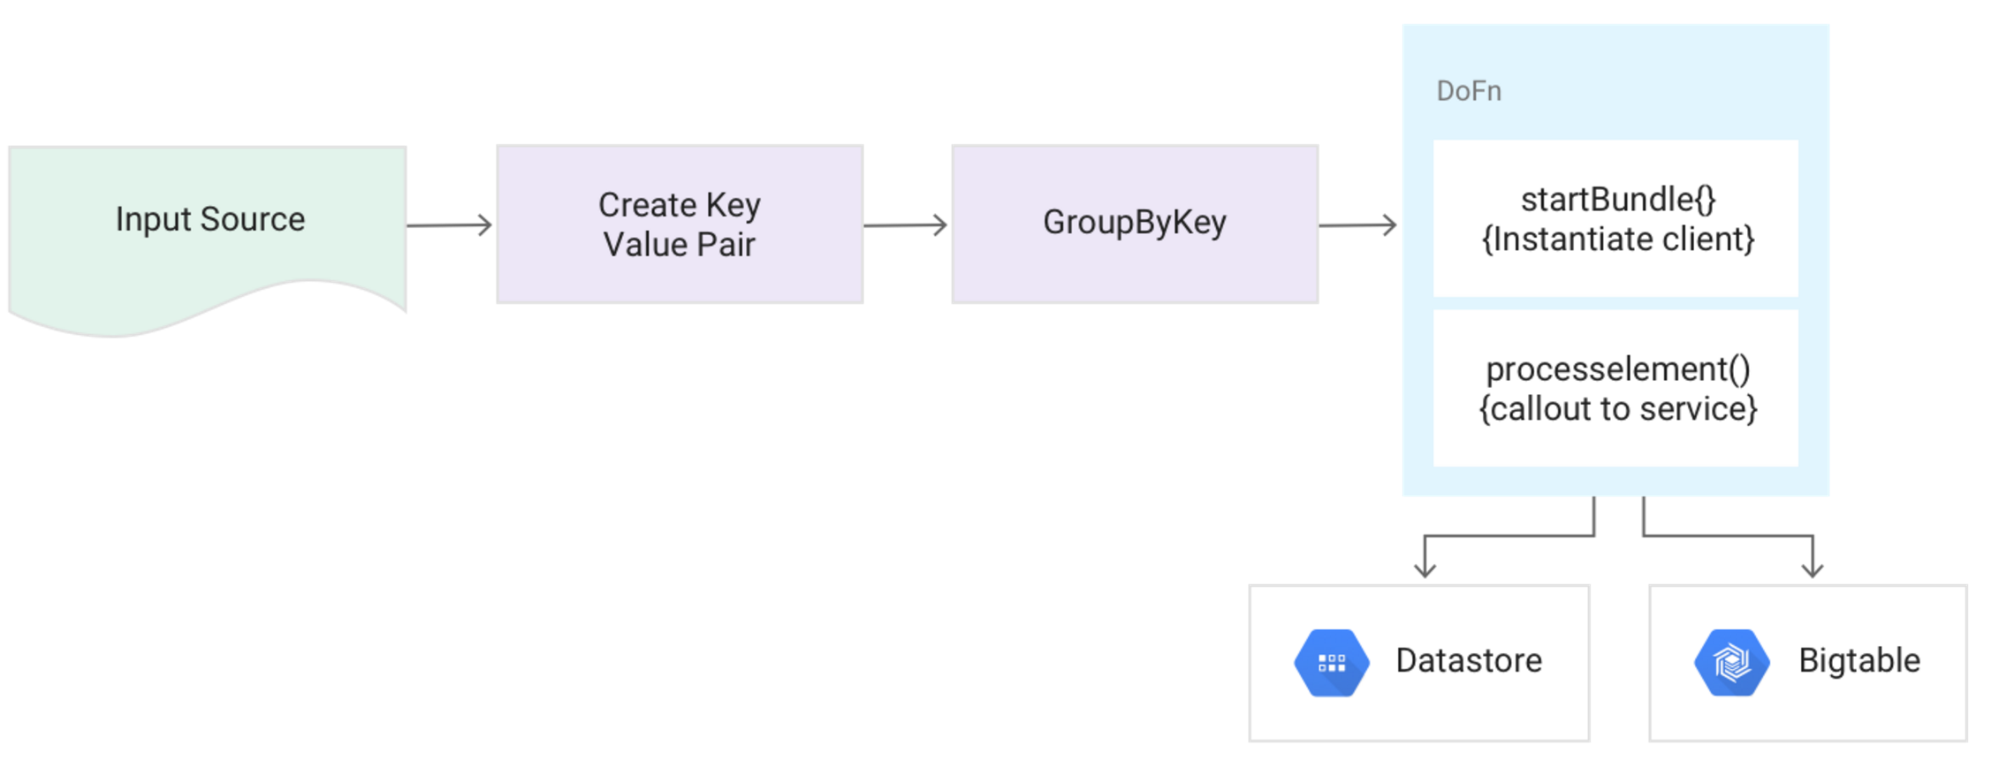 Guide To Common Cloud Dataflow Use Case Patterns Part 1 Google Template In Addition Data Structure Diagram On Line 6ssey